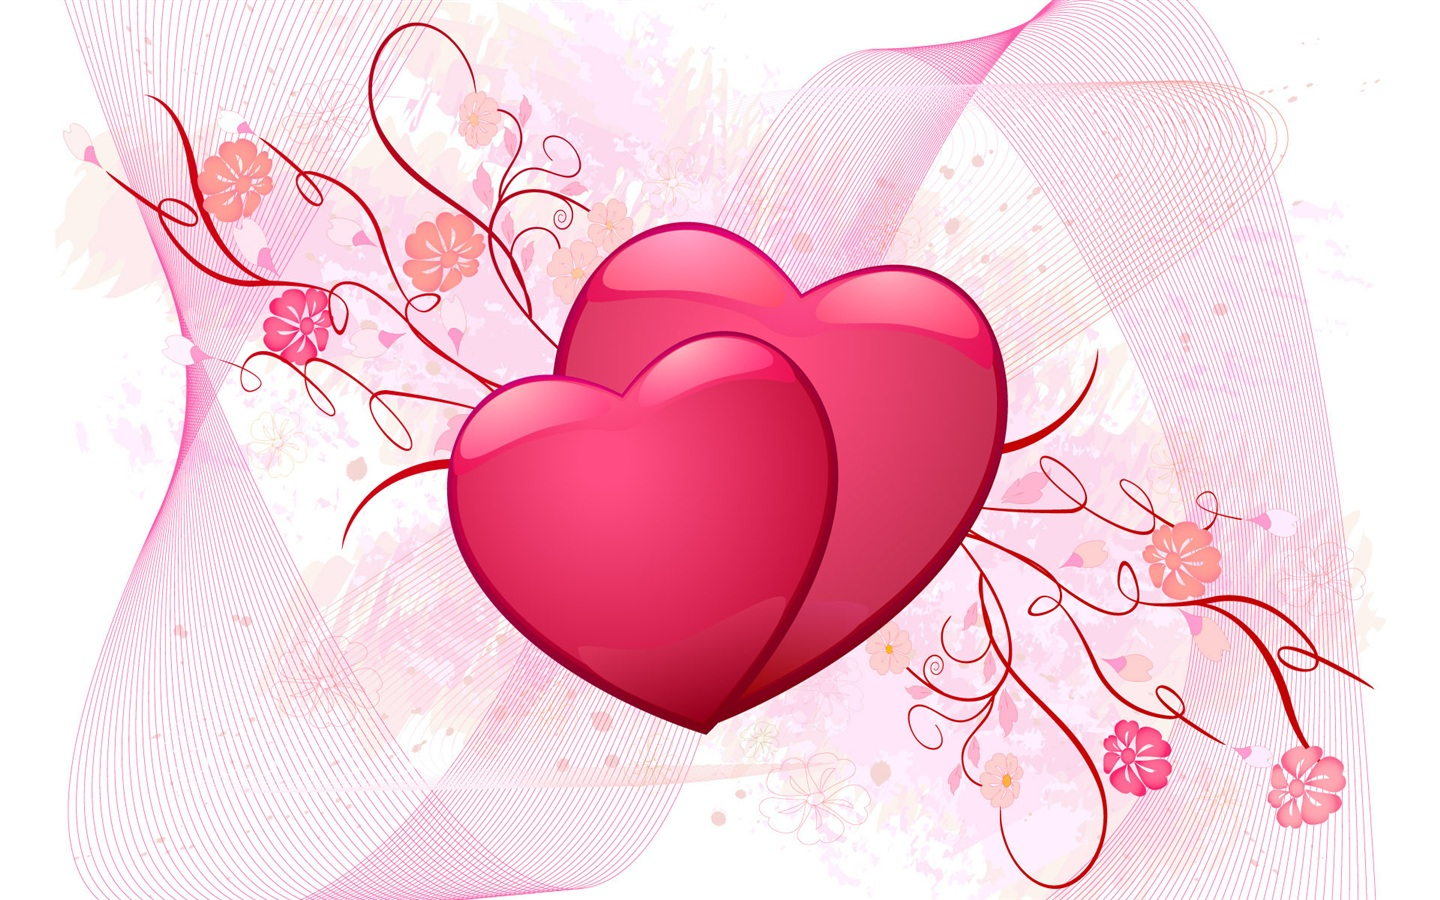 Pink love heart wallpaper - 1440x900